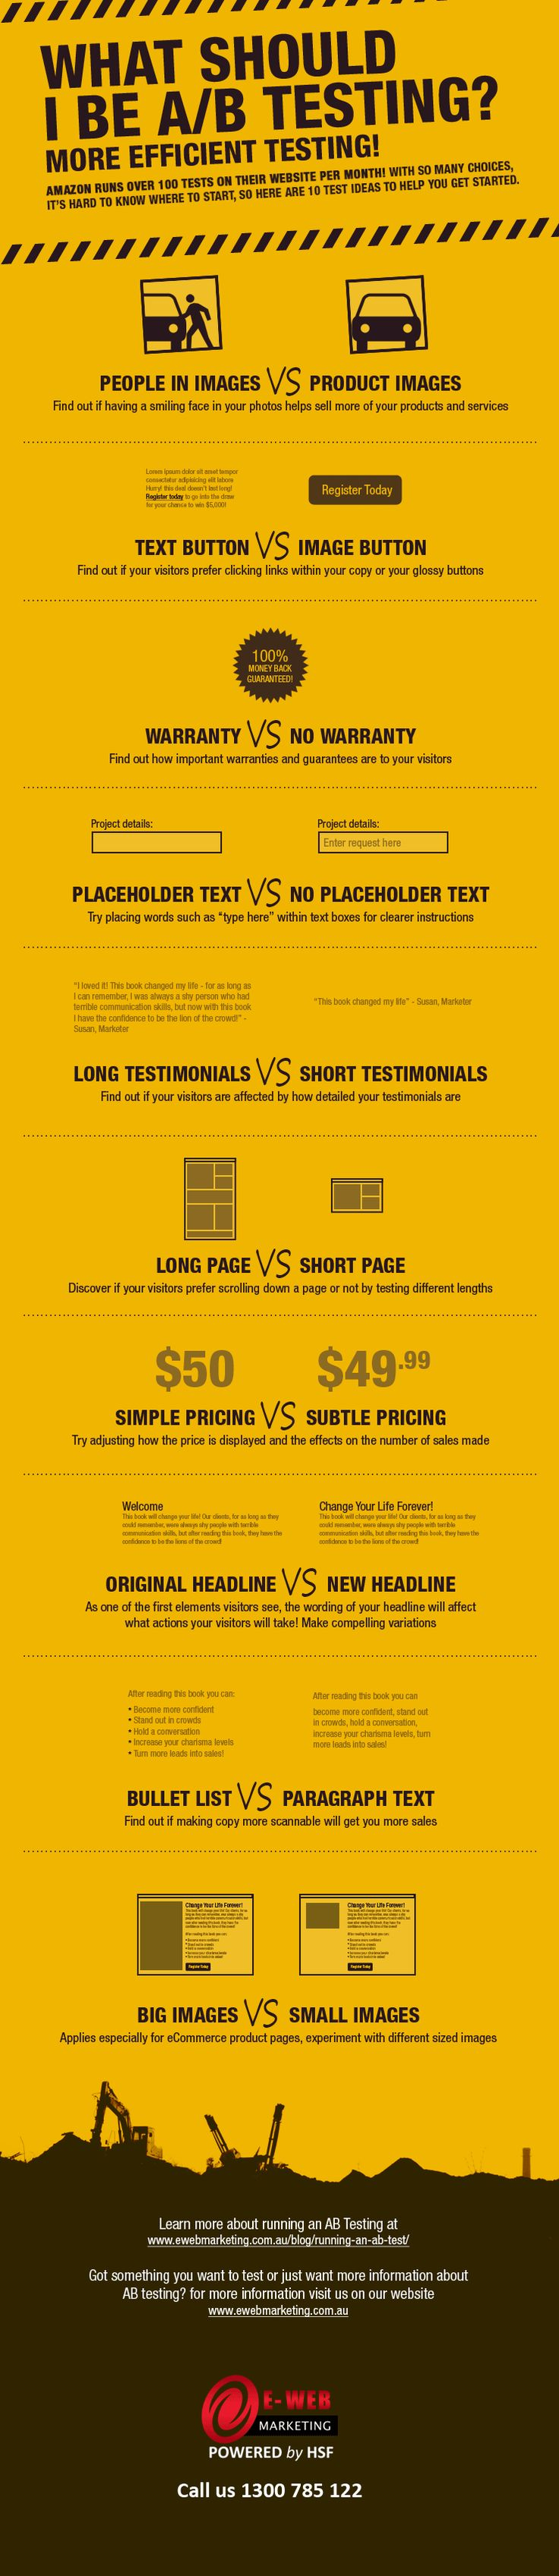 What Should I be A/B Testing? #Infographic #ForInspiration #OsnLikesIt. If you like UX, design, or design thinking, check out theuxblog.com